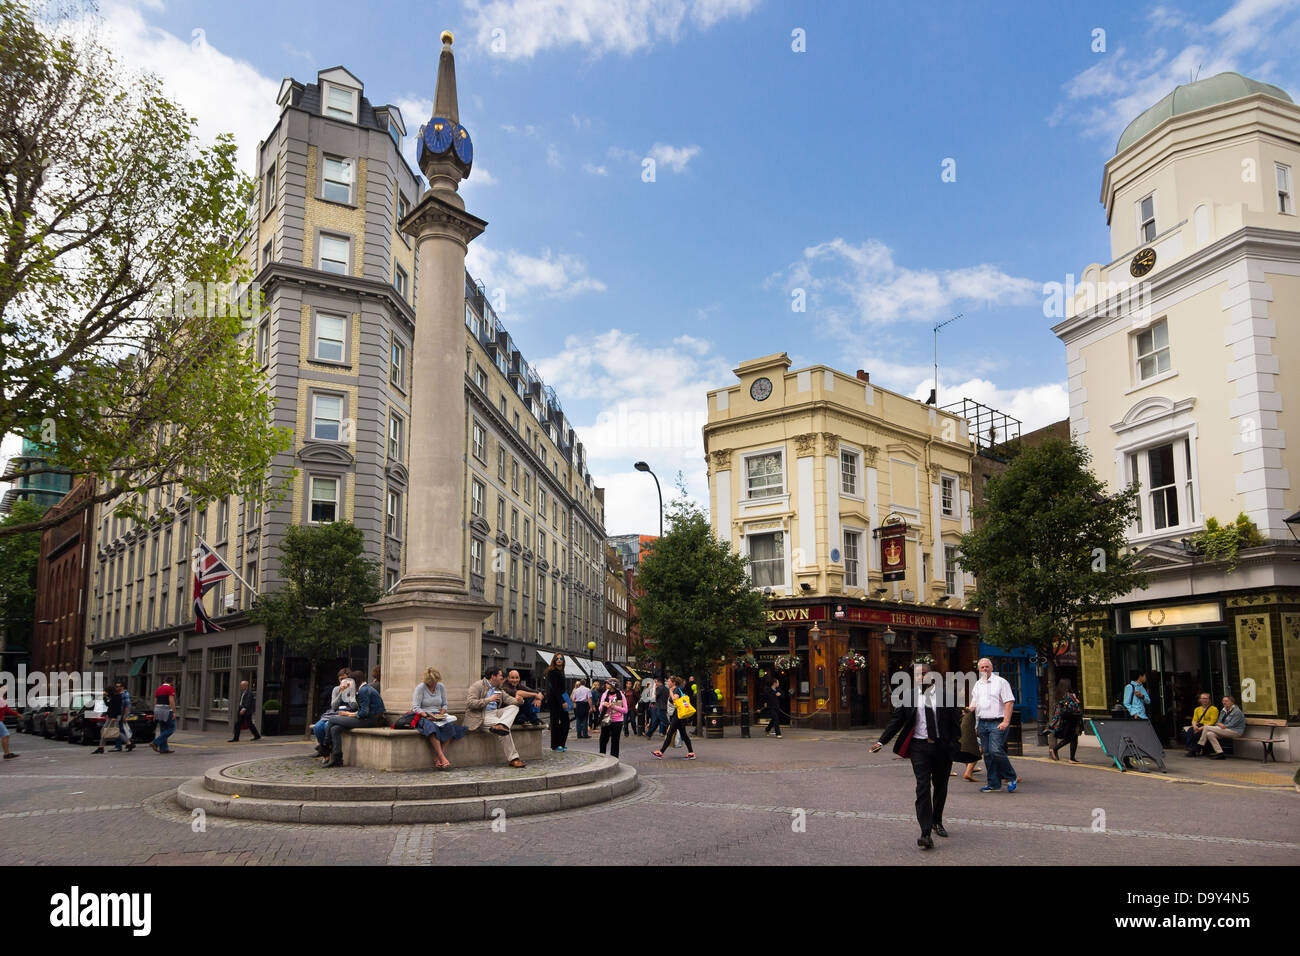 The Seven Dials junction, Covent Garden, London - Stock Image